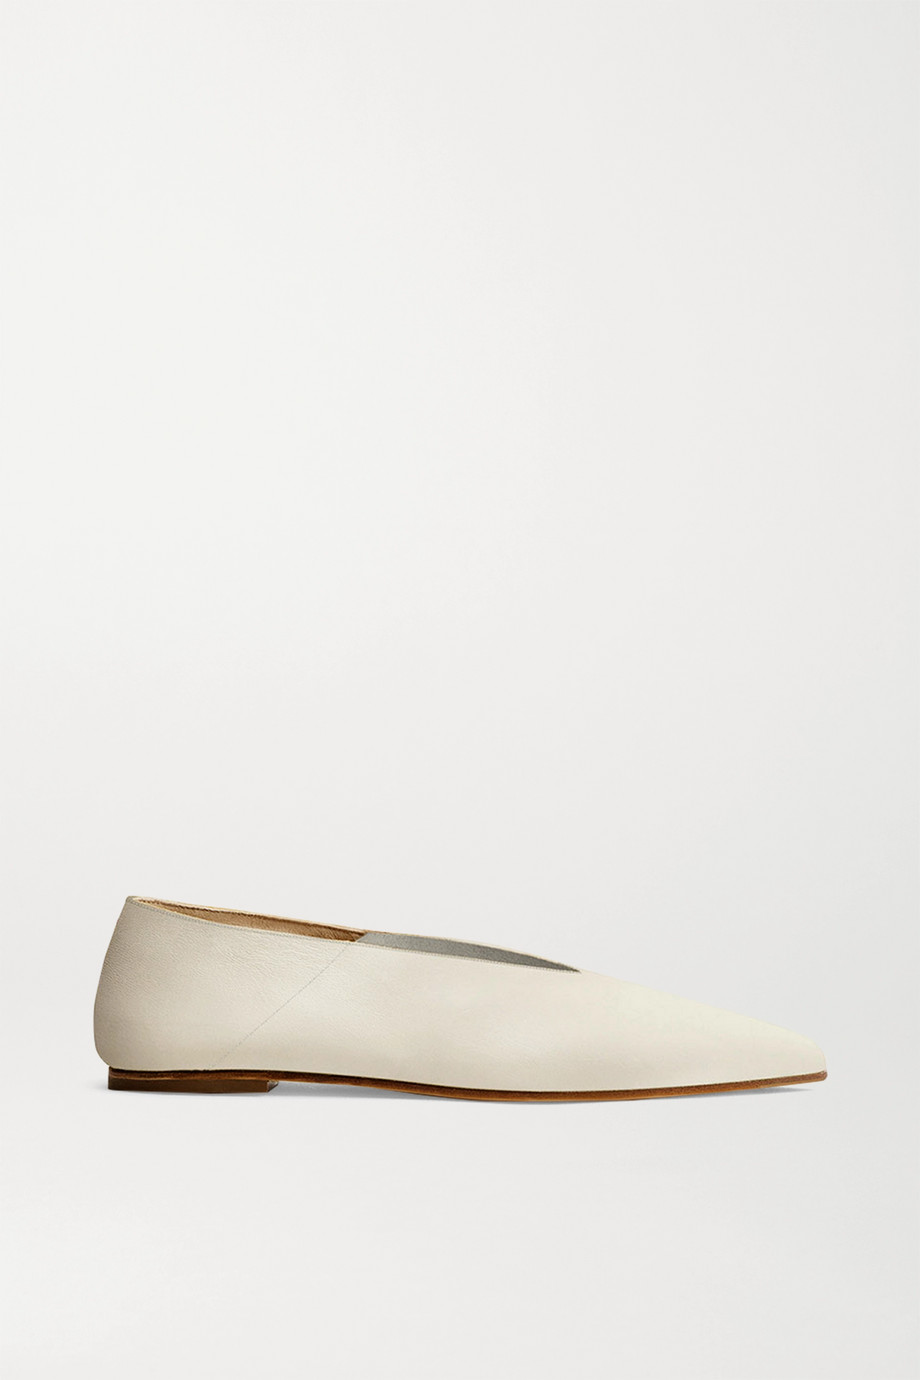 aeyde Moa leather point-toe flats